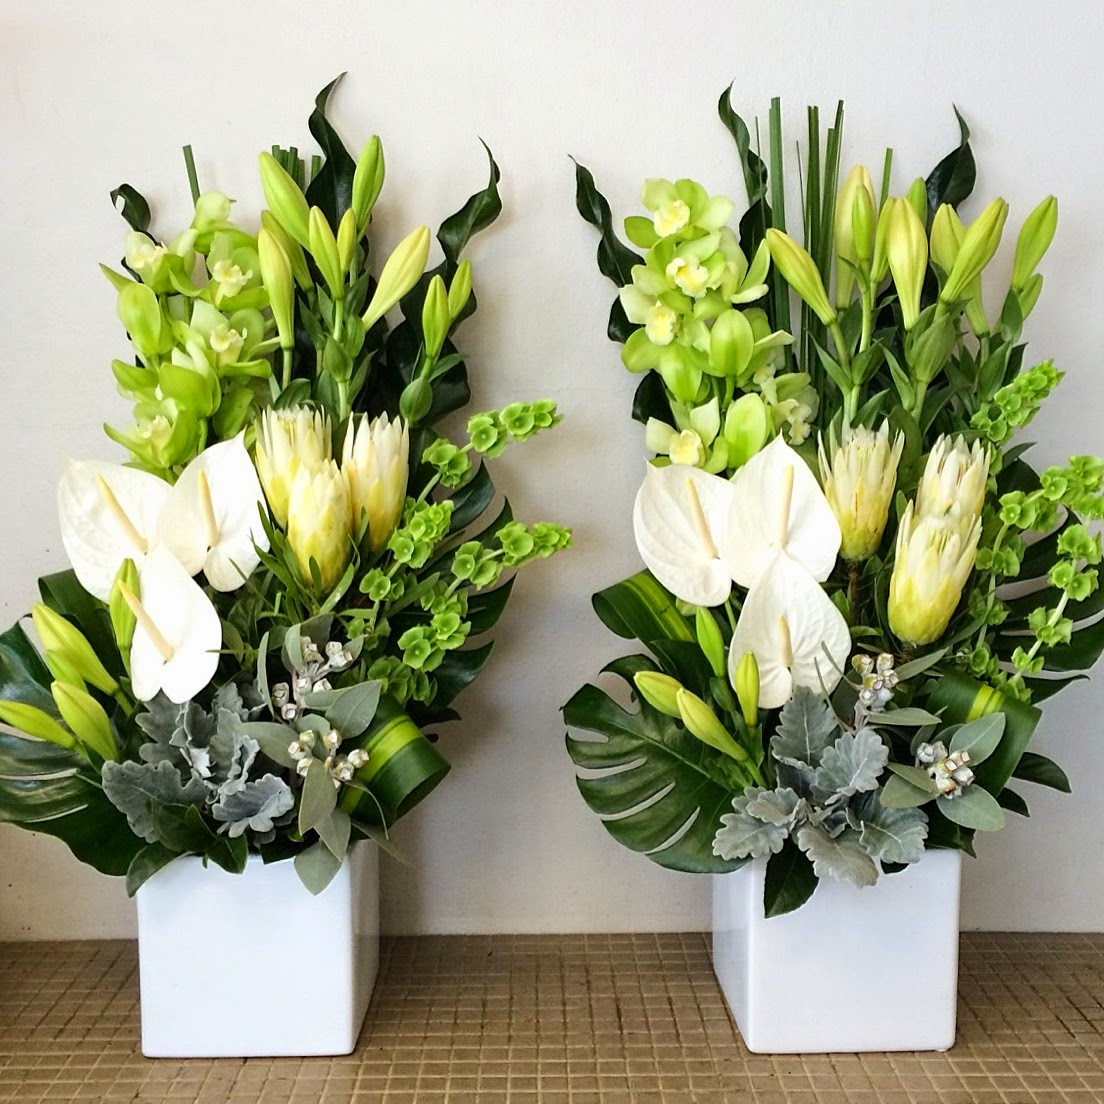 Urban flower lime and white flowers for church event in